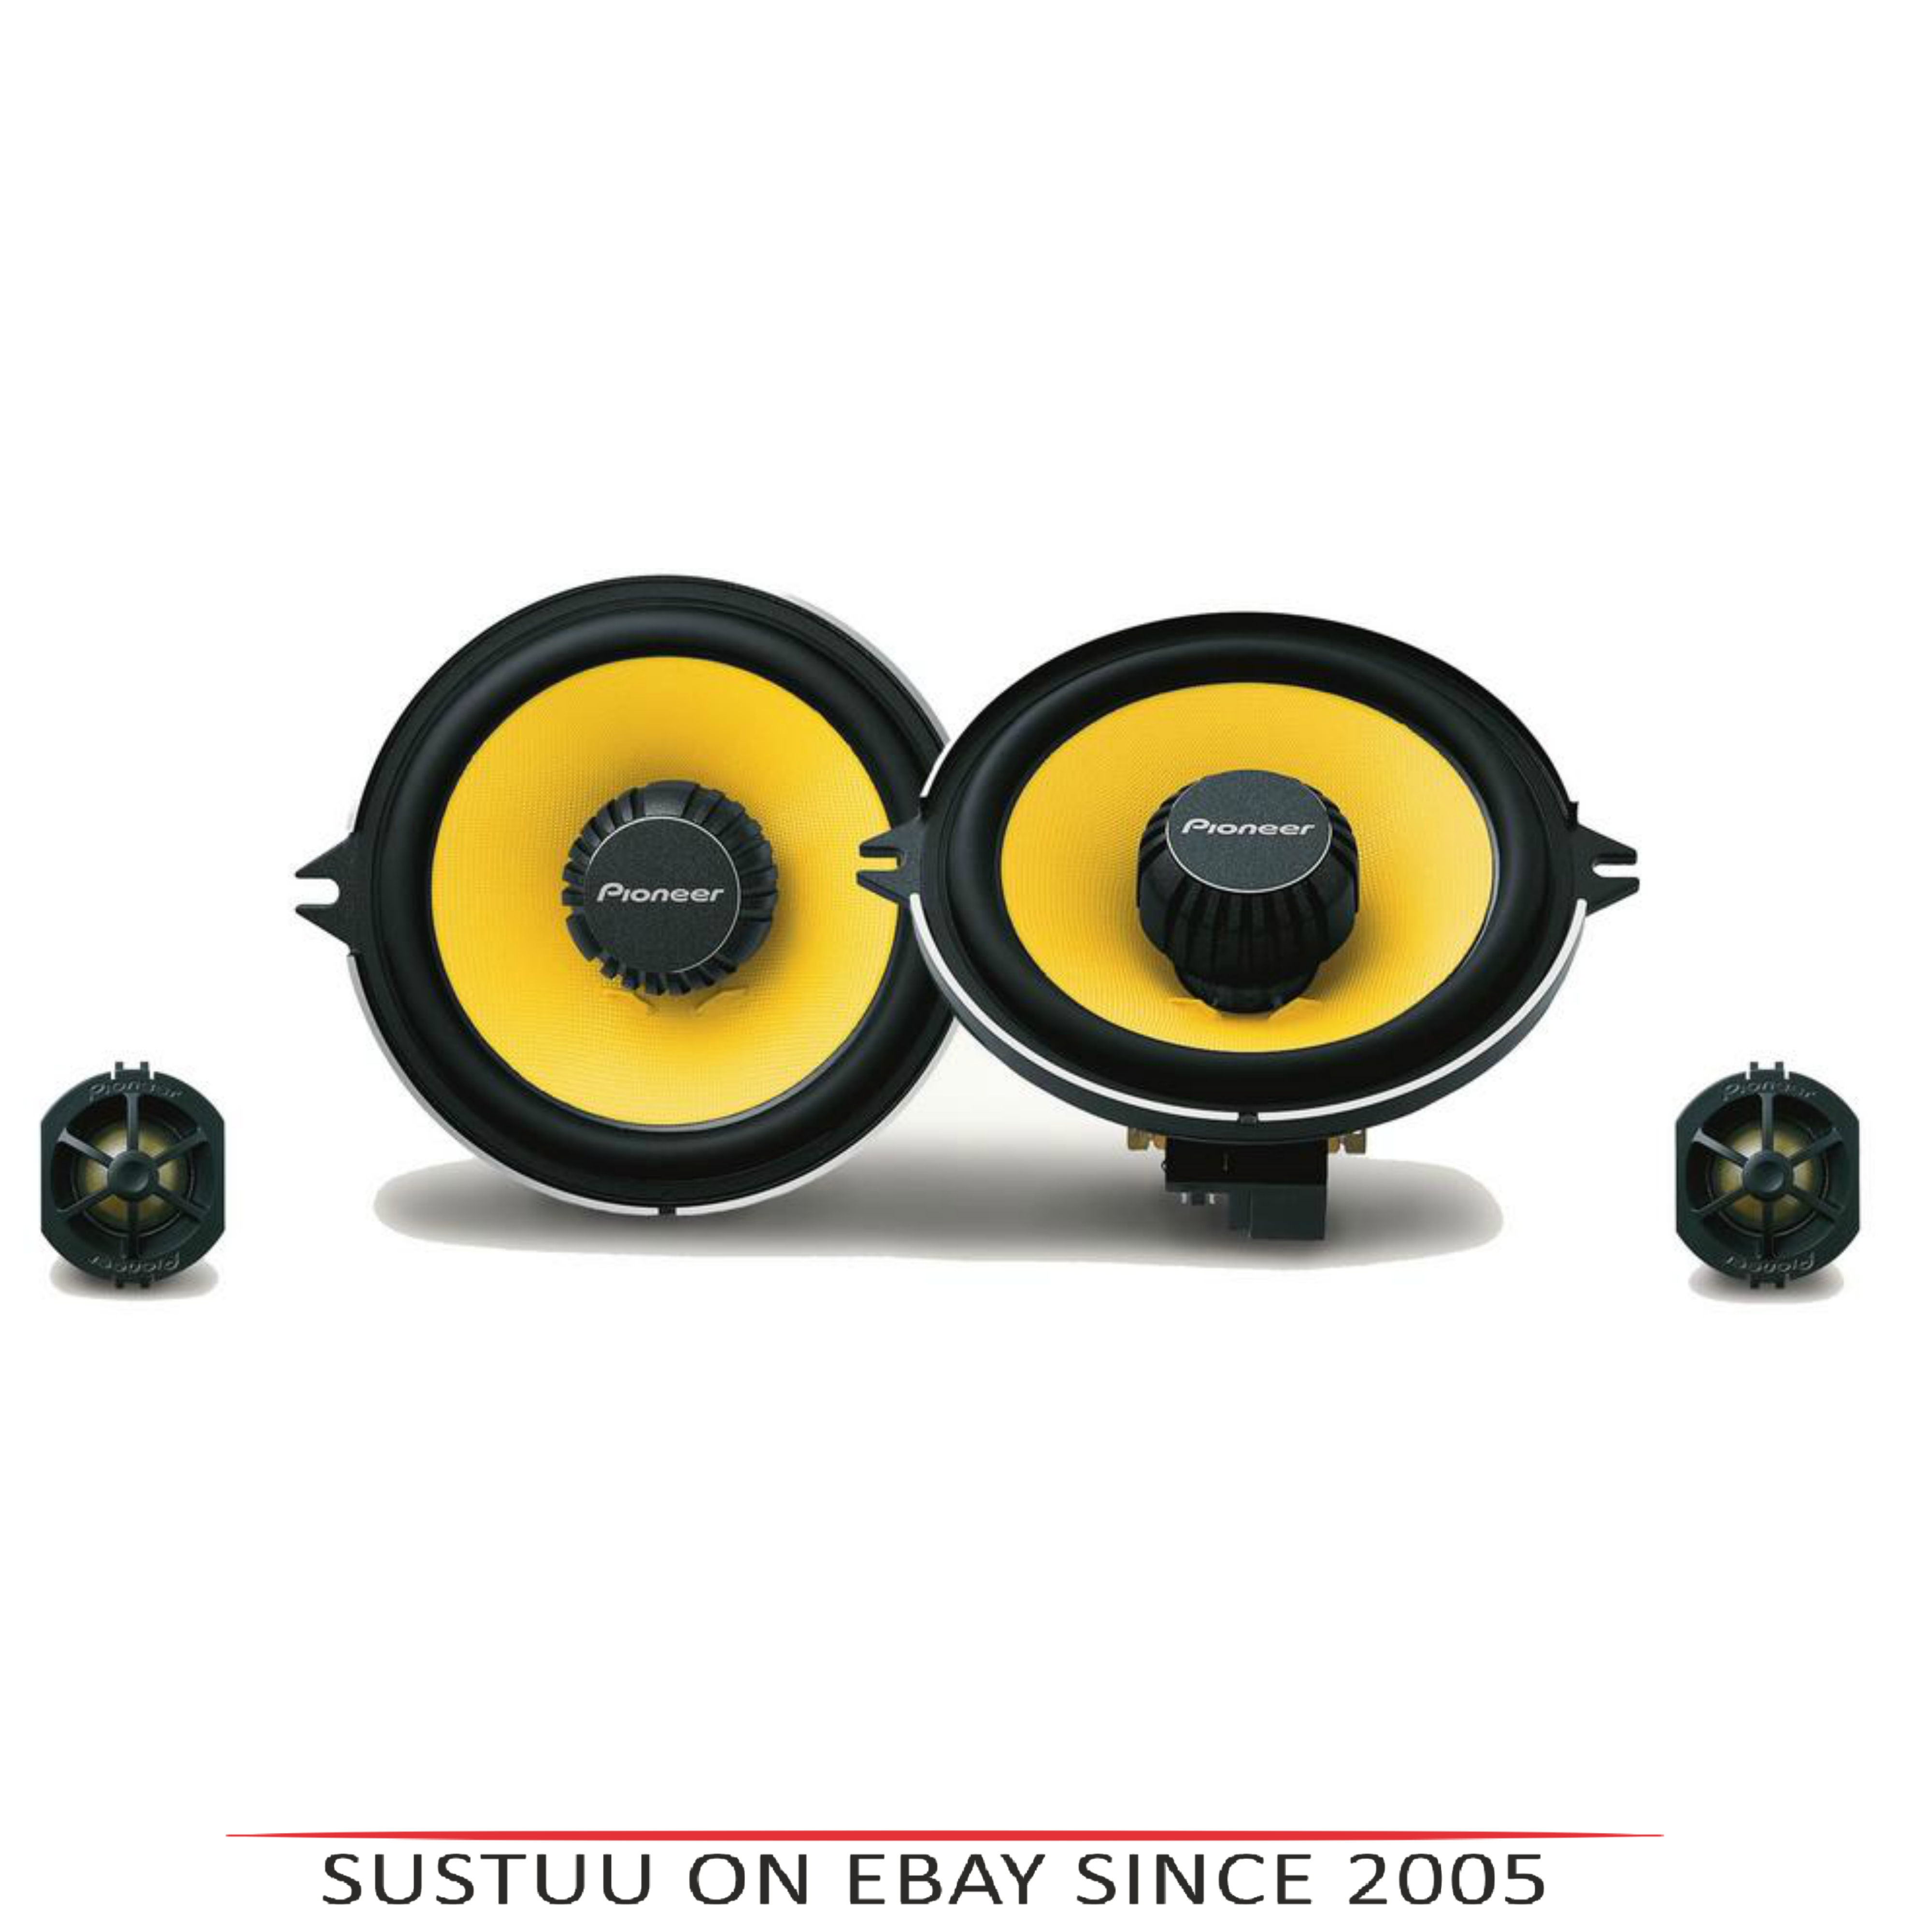 Pioneer TS-Q131C|In Car 2-way Component Speakers|13cm|180W|Fits Renault Vehicles